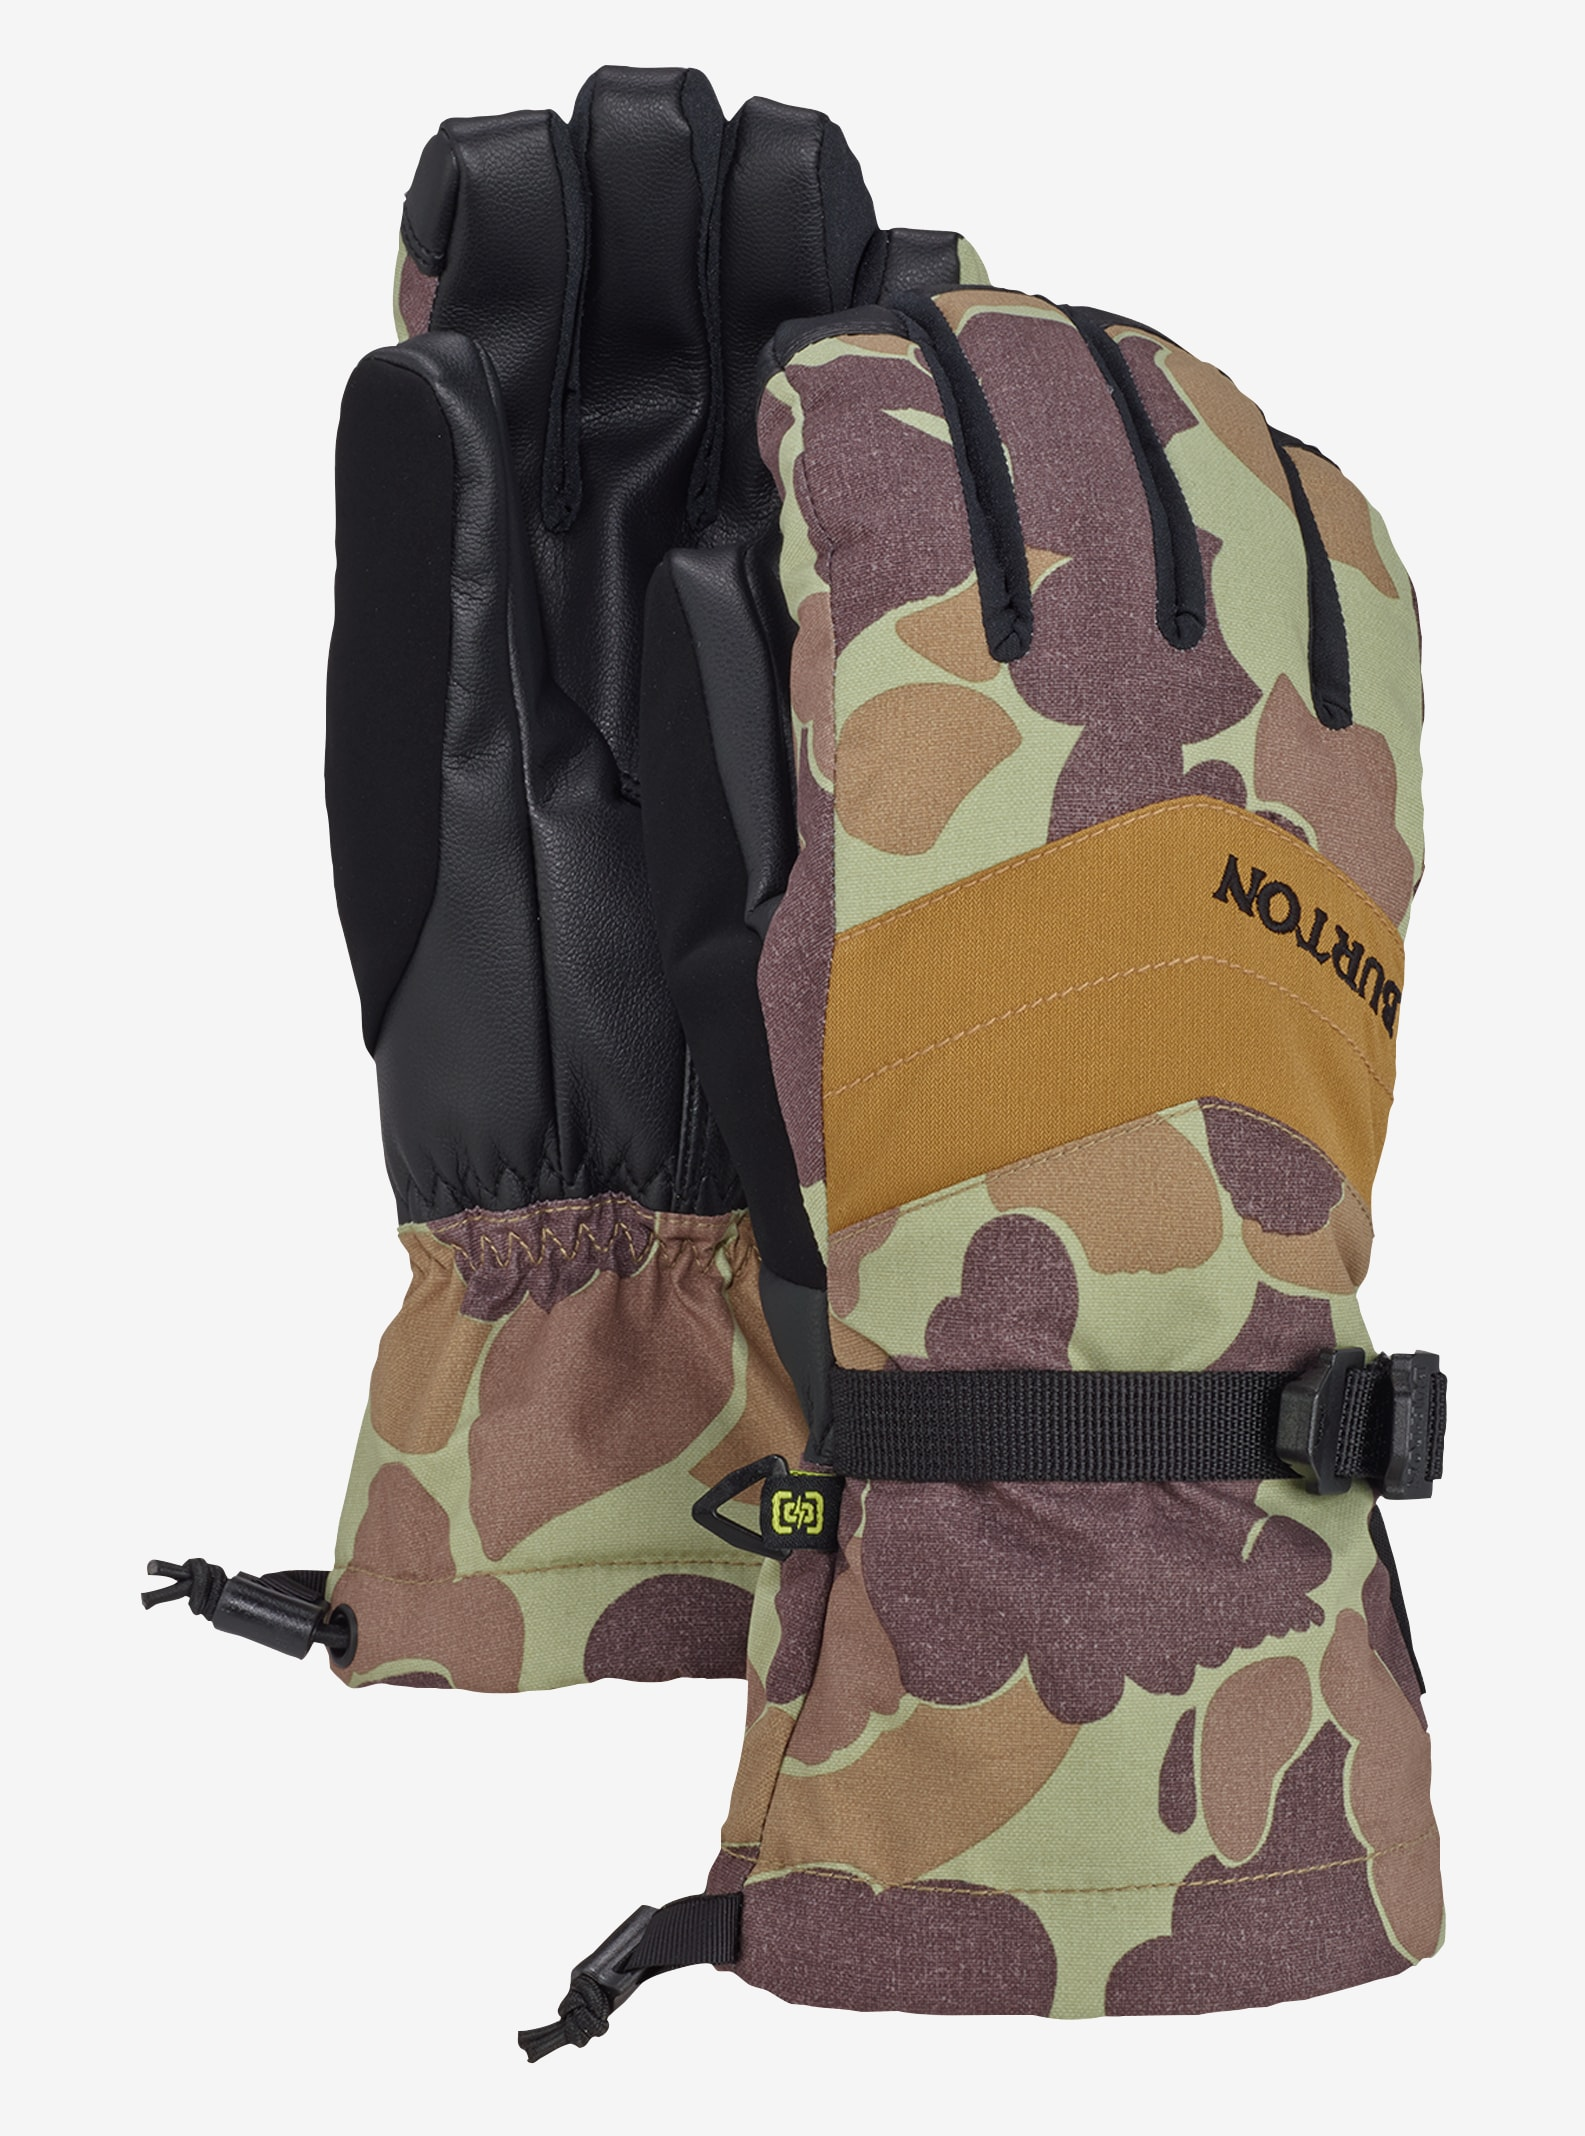 Women's Burton Prospect Glove shown in Bean Camo / Dull Gold